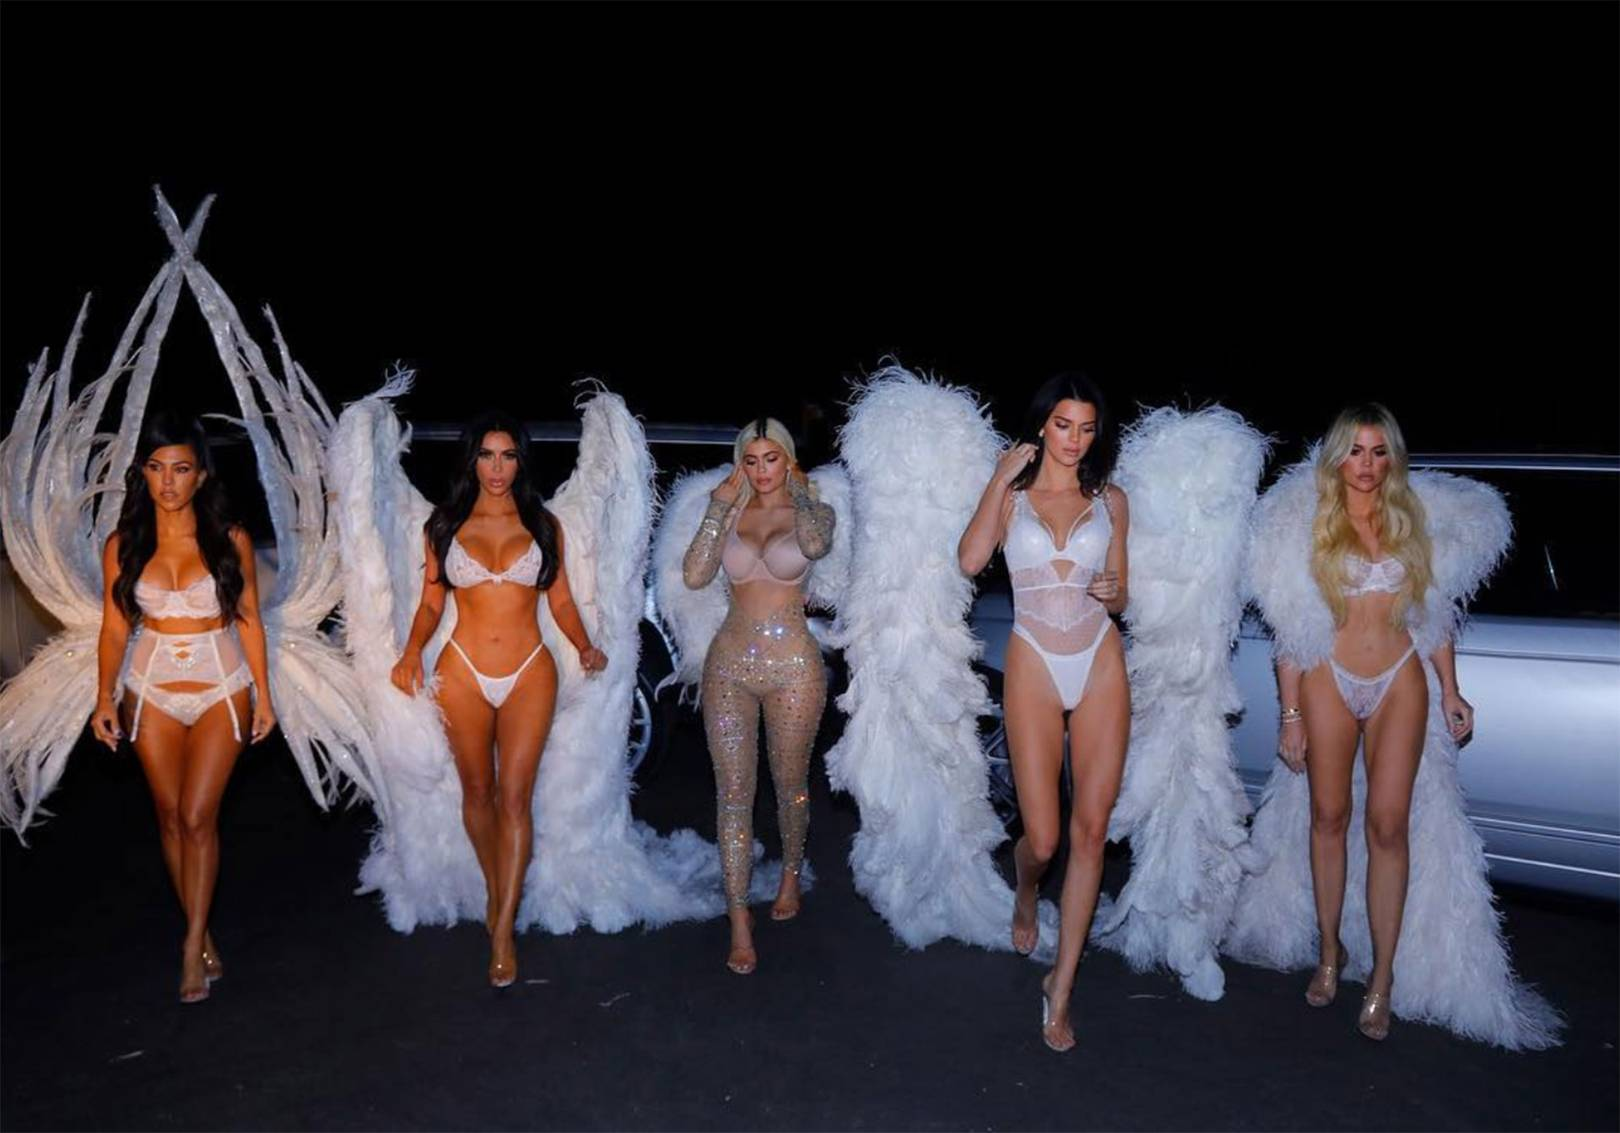 c9b1a310a02 Why Did The Kardashian Jenner Sisters Dress As Victoria s Secret Angels For  Halloween